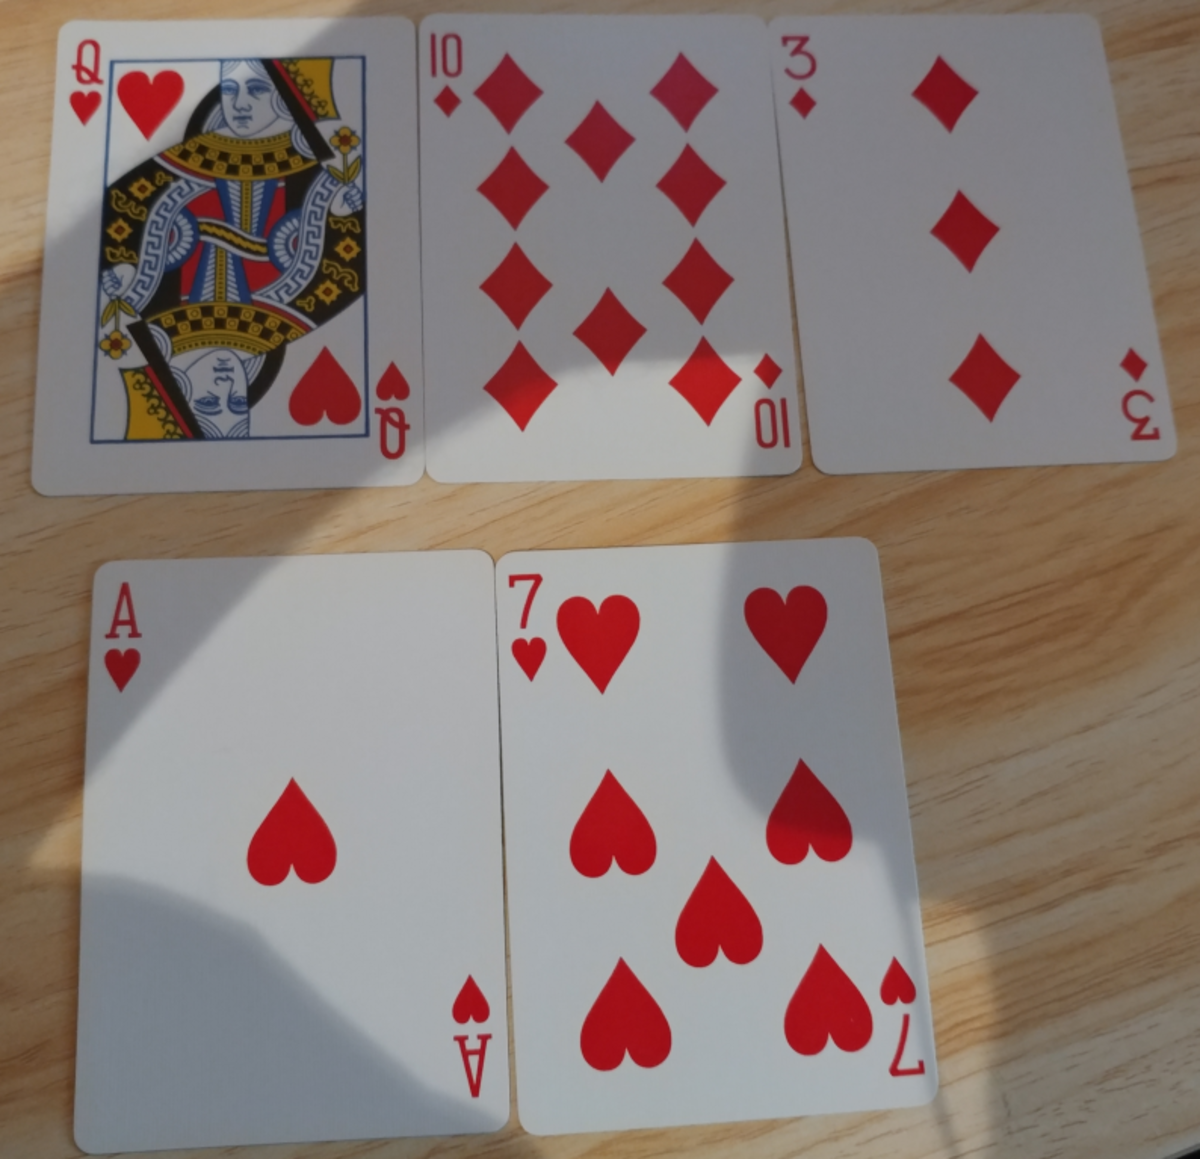 I need two cards to make a flush.